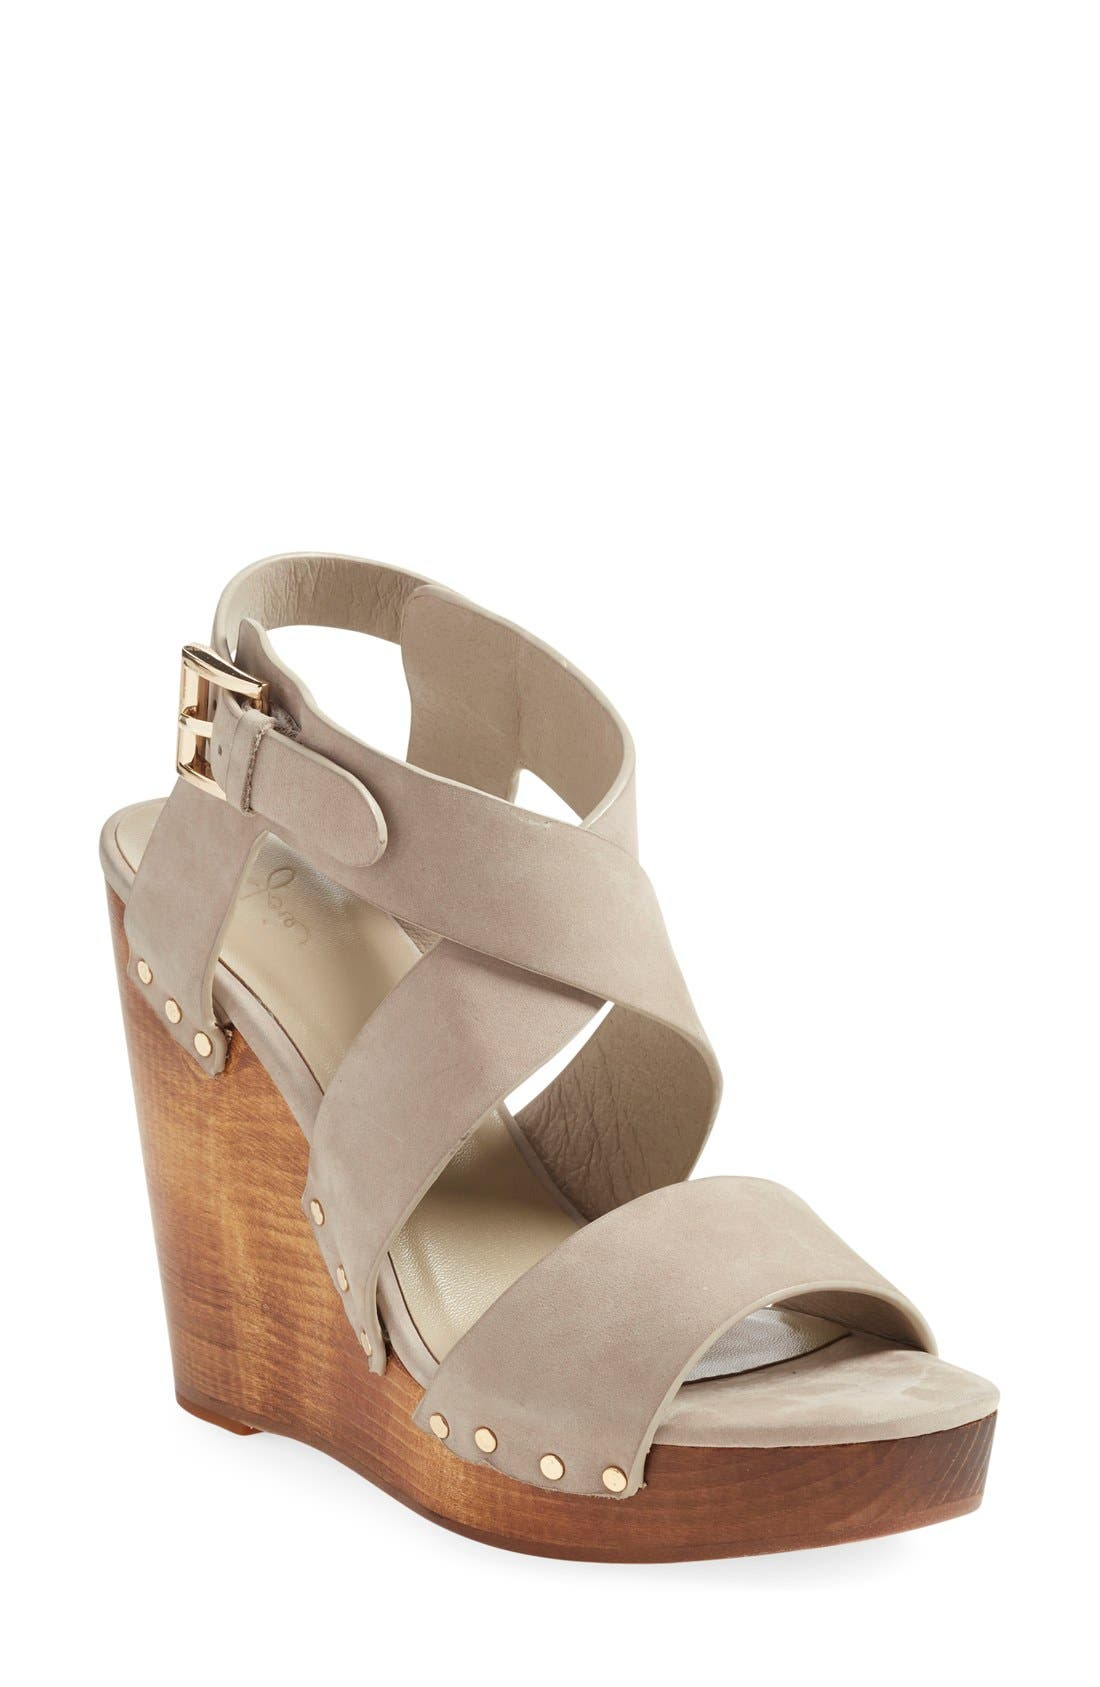 Main Image - Joie 'Cecilia' Wedge Sandal (Women)